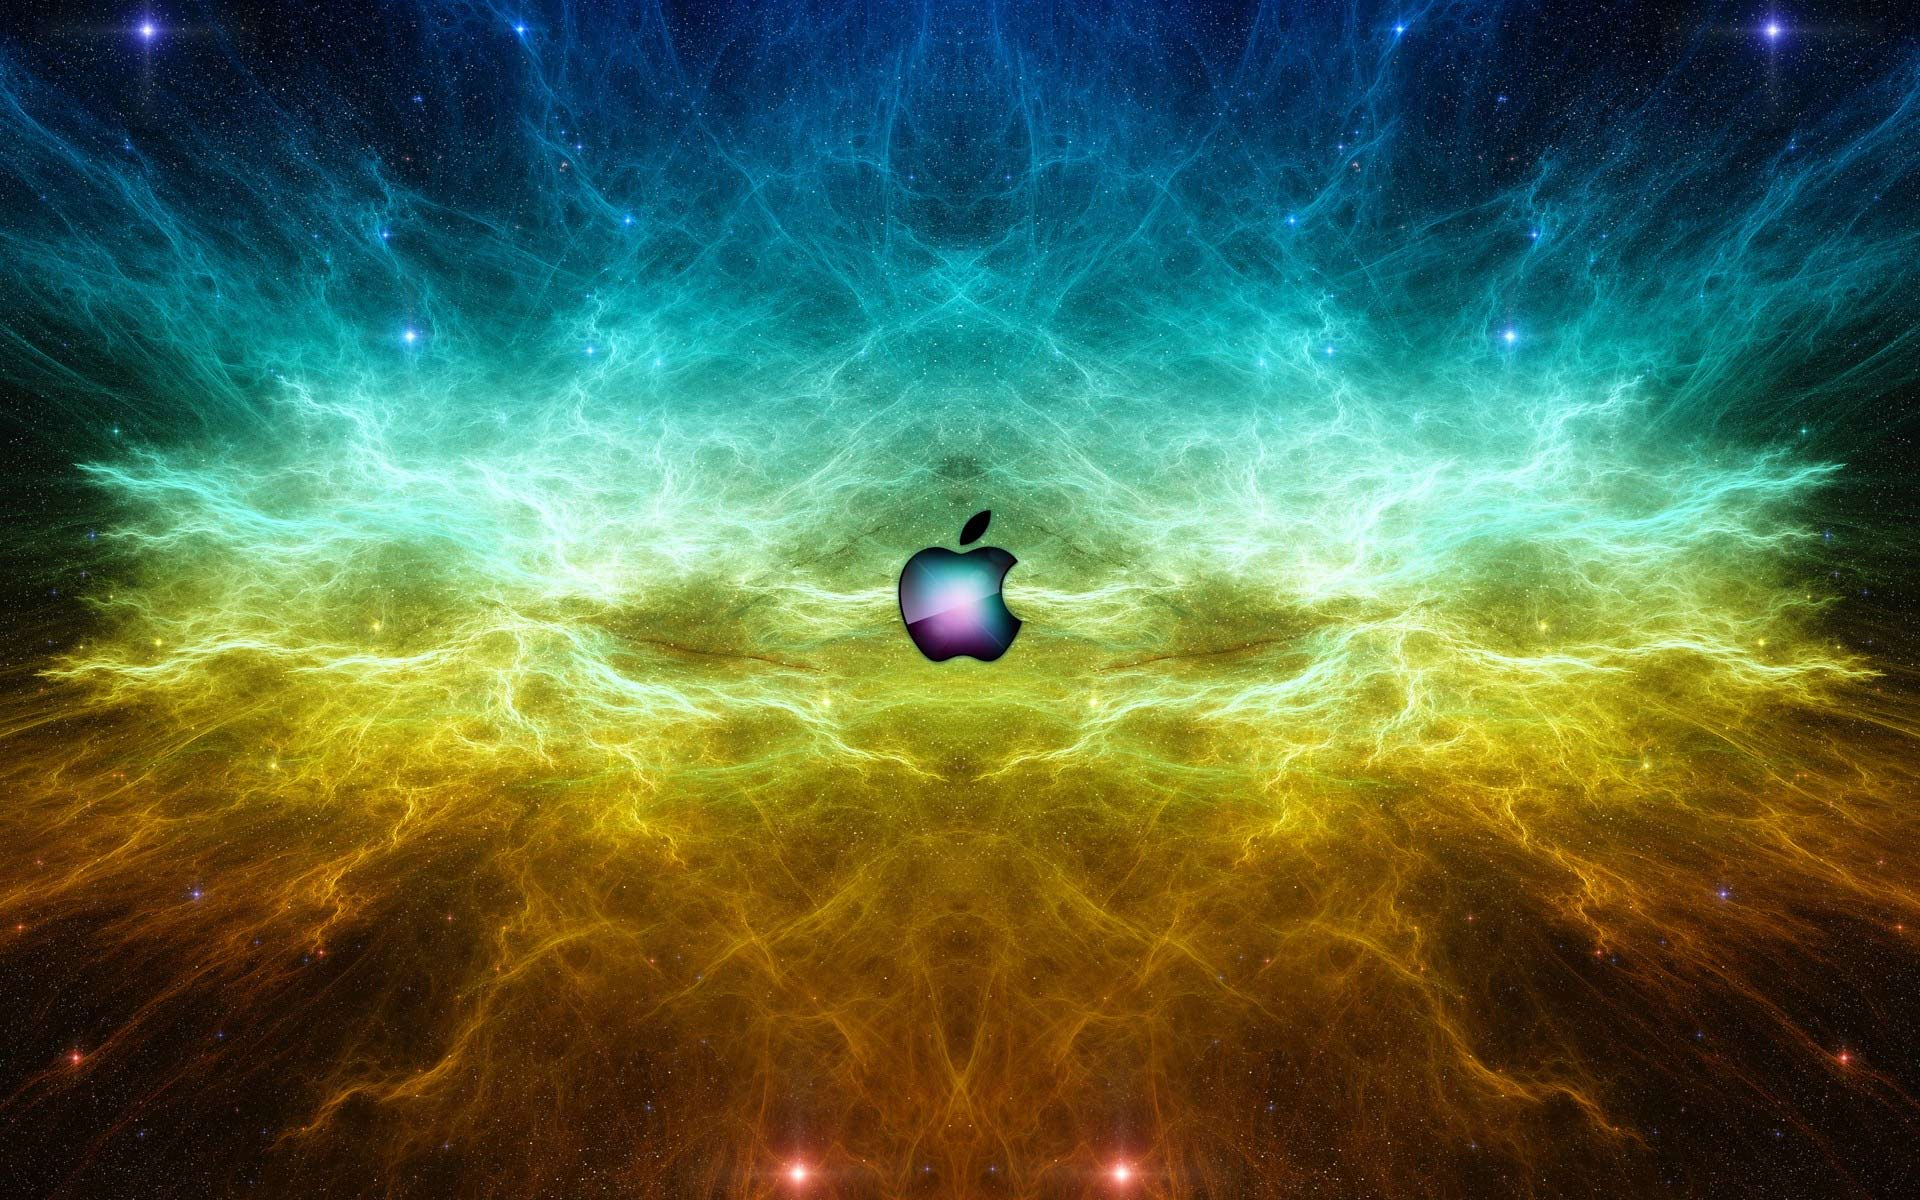 backgrounds Apple Nebula hd Wallpaper High Quality Wallpapers 1920x1200